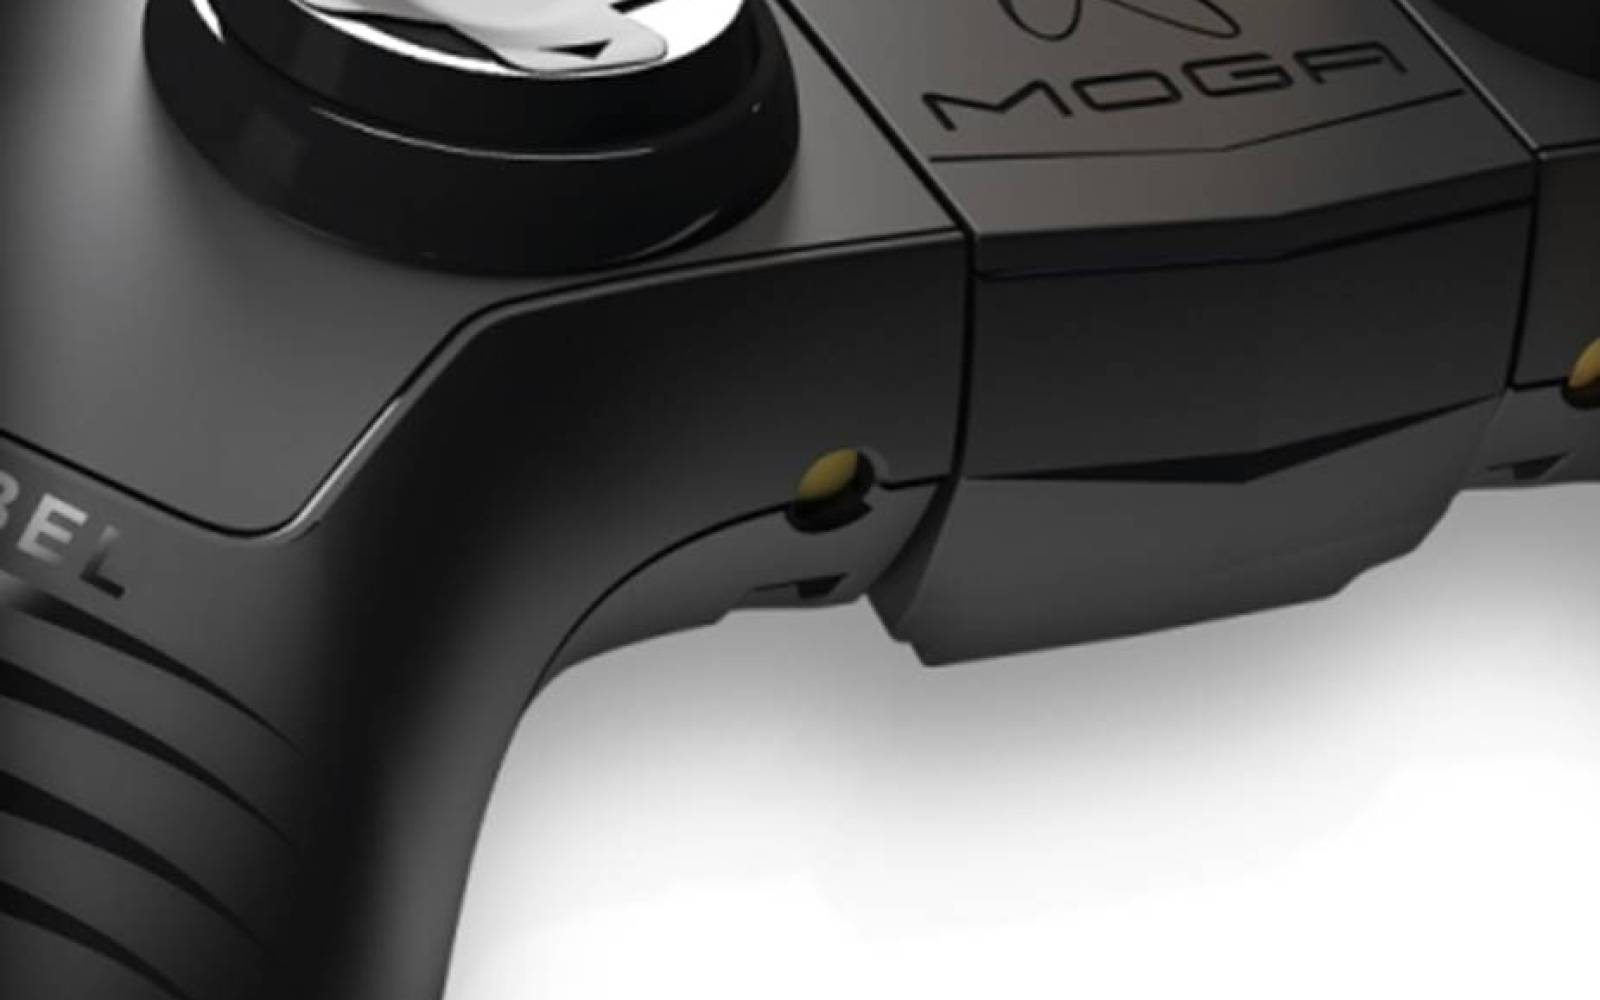 Moga shows off its first Bluetooth Made-for-iPhone game controller ahead of official launch